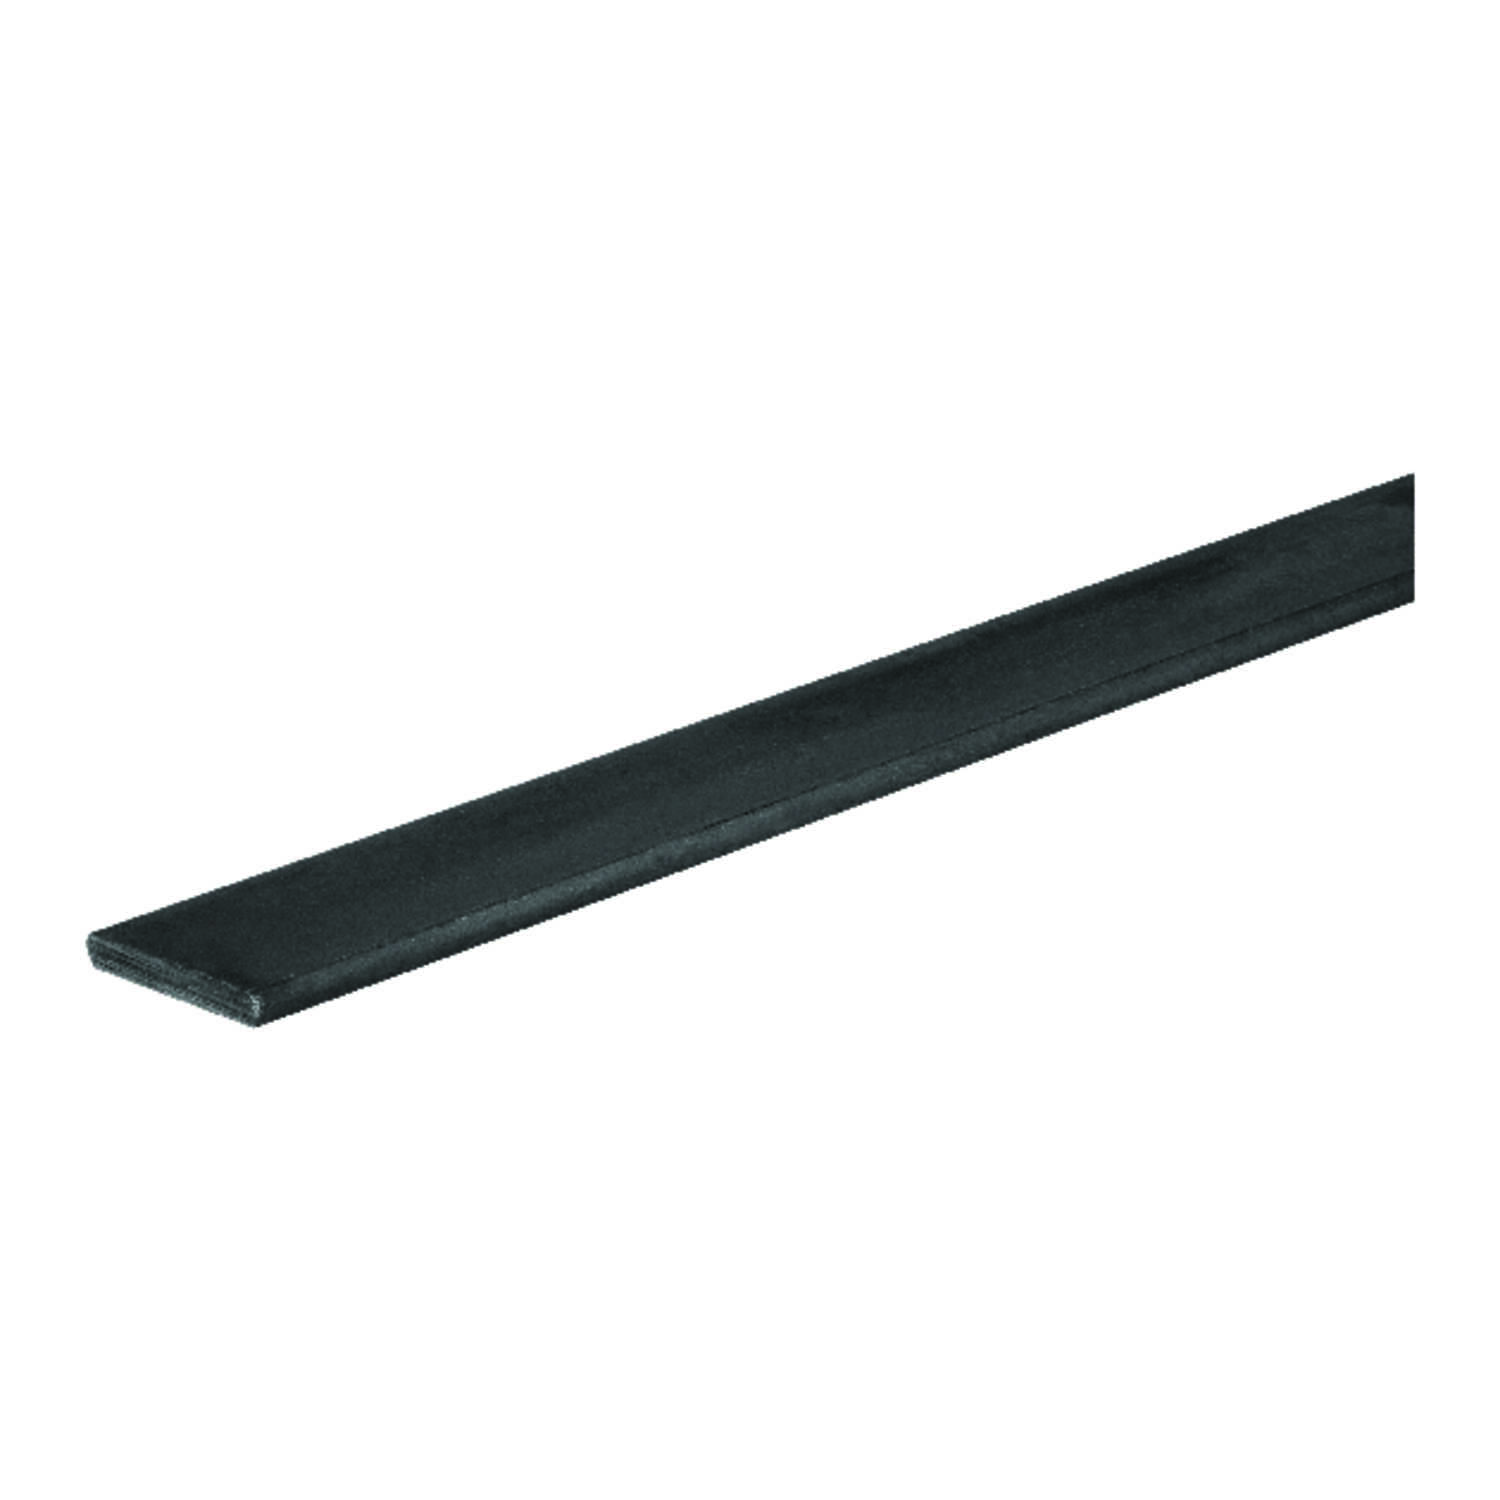 Boltmaster Flats 1/8 in. x 2 in. x 36 in. Carbon Steel